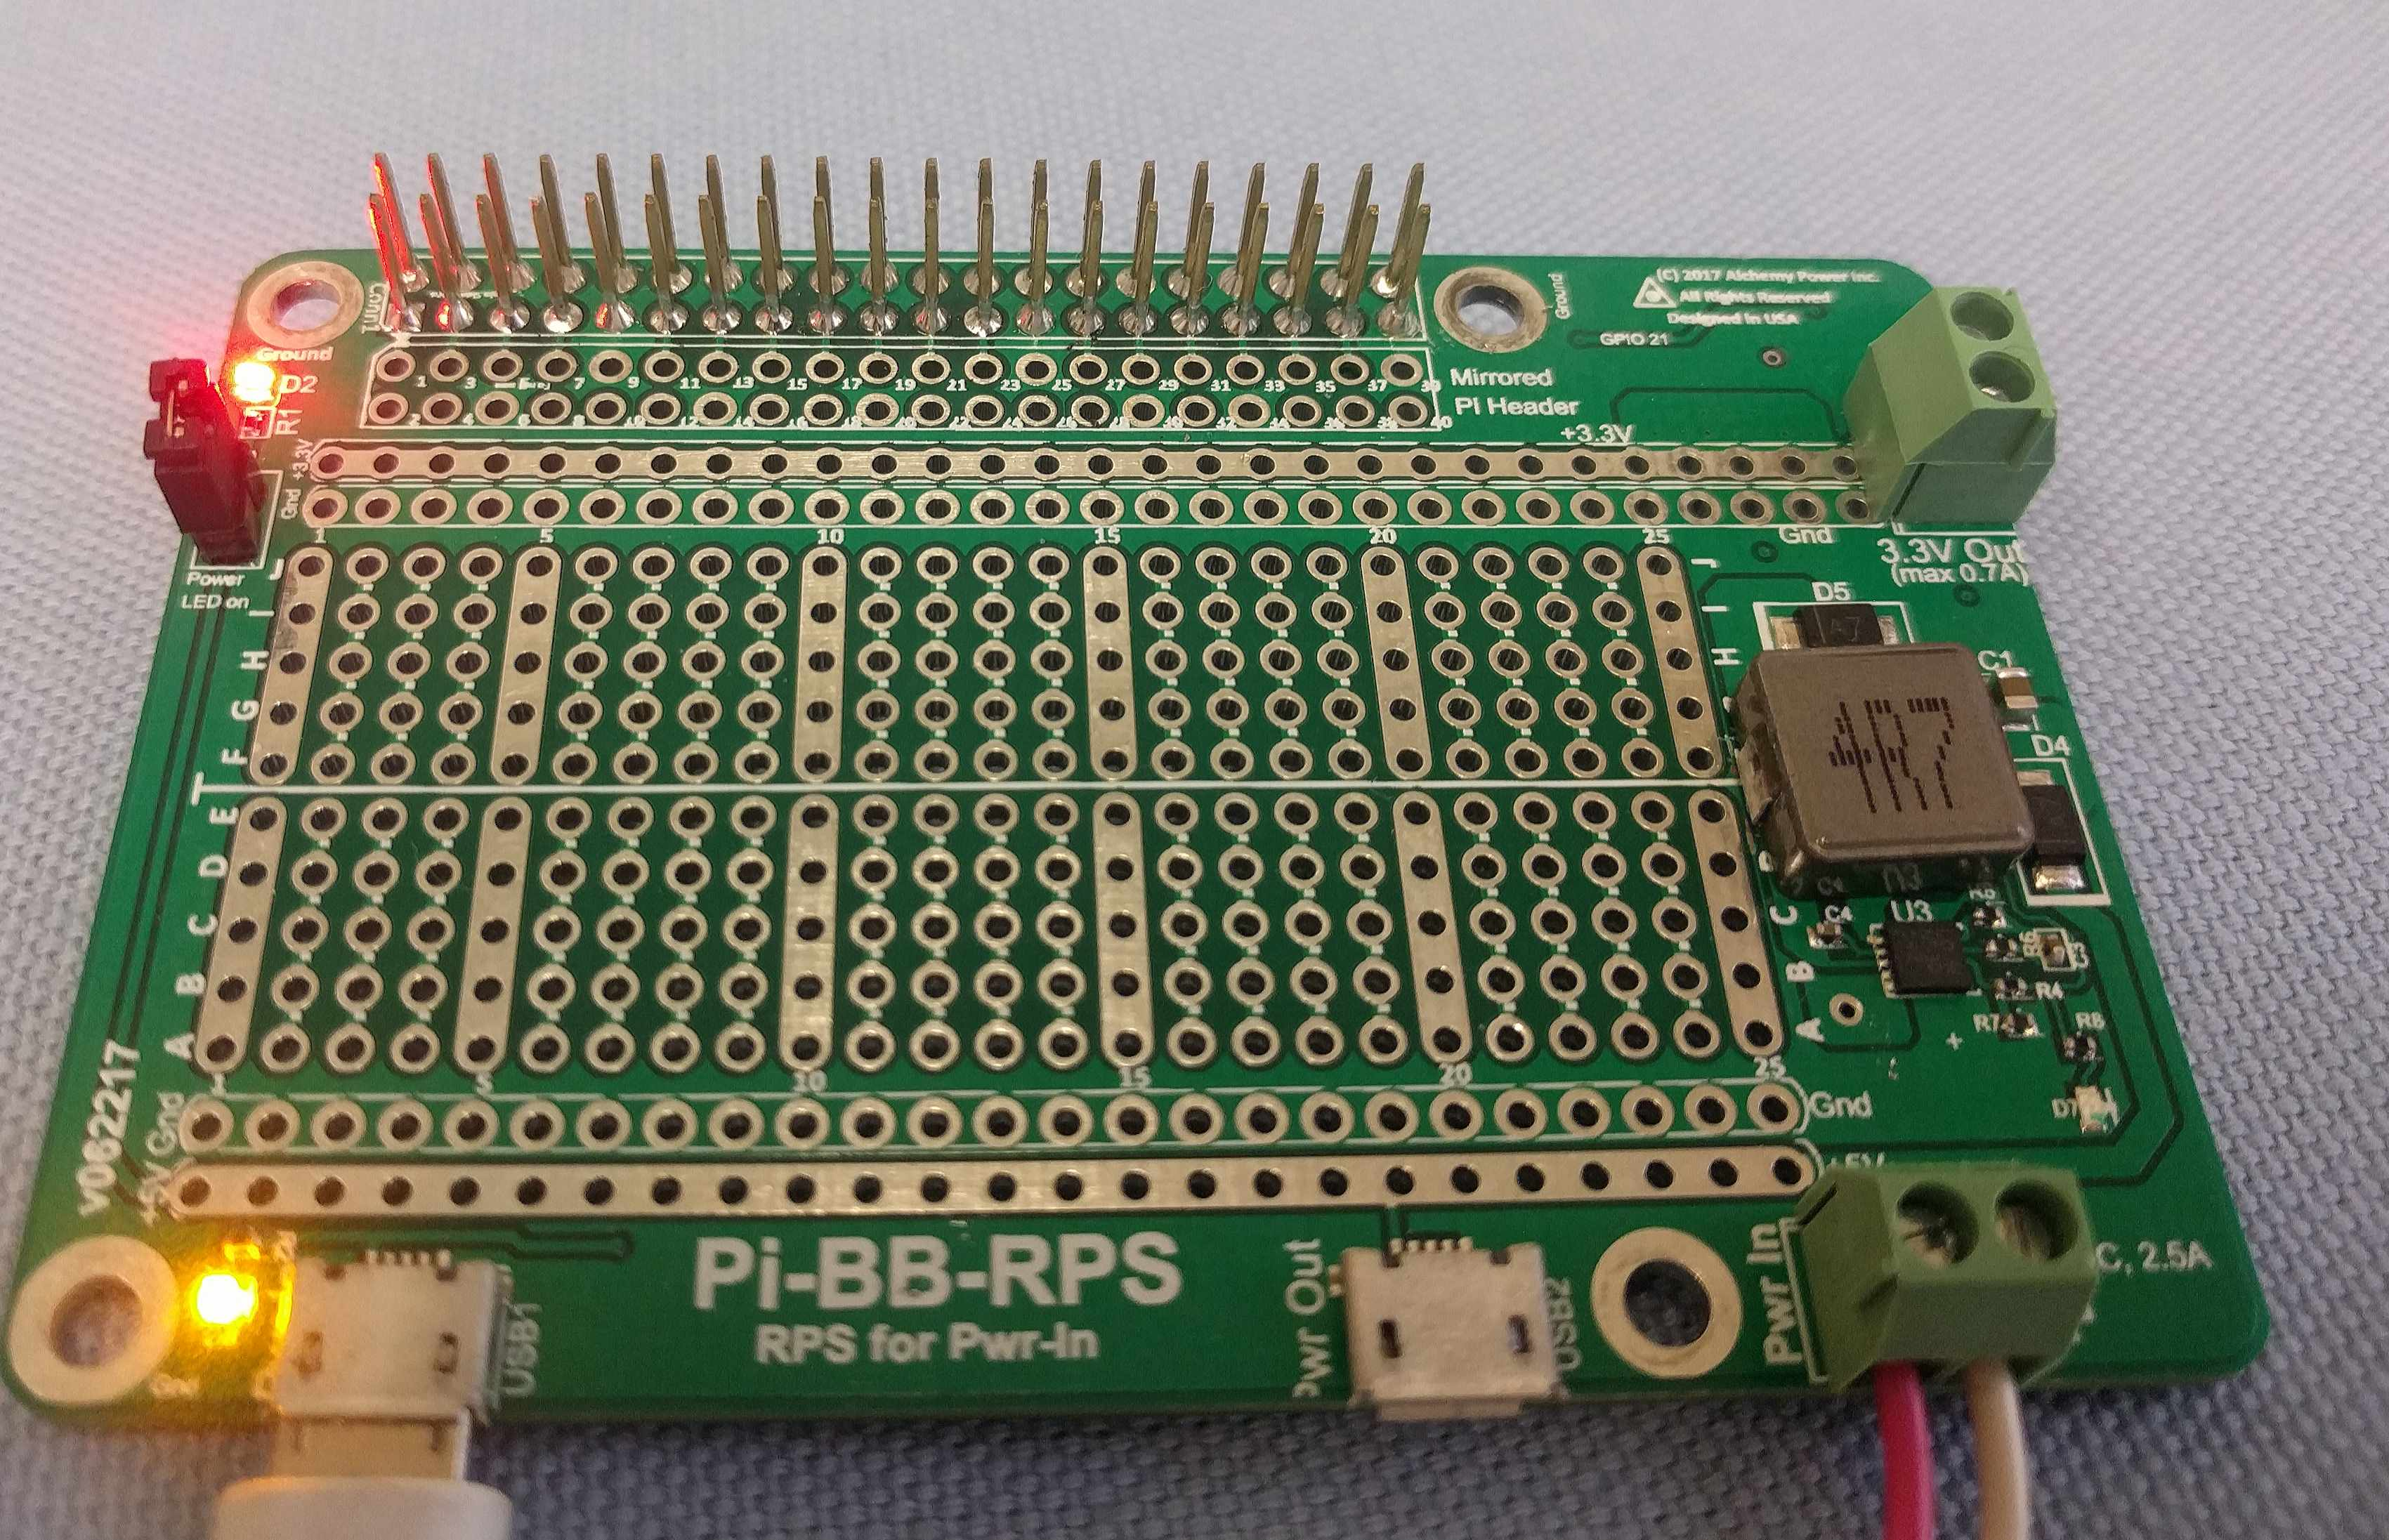 Pi Bb Rps Breadboard With Redundant Power Supply Alchemy Inc Usb Schematic On 2 Off